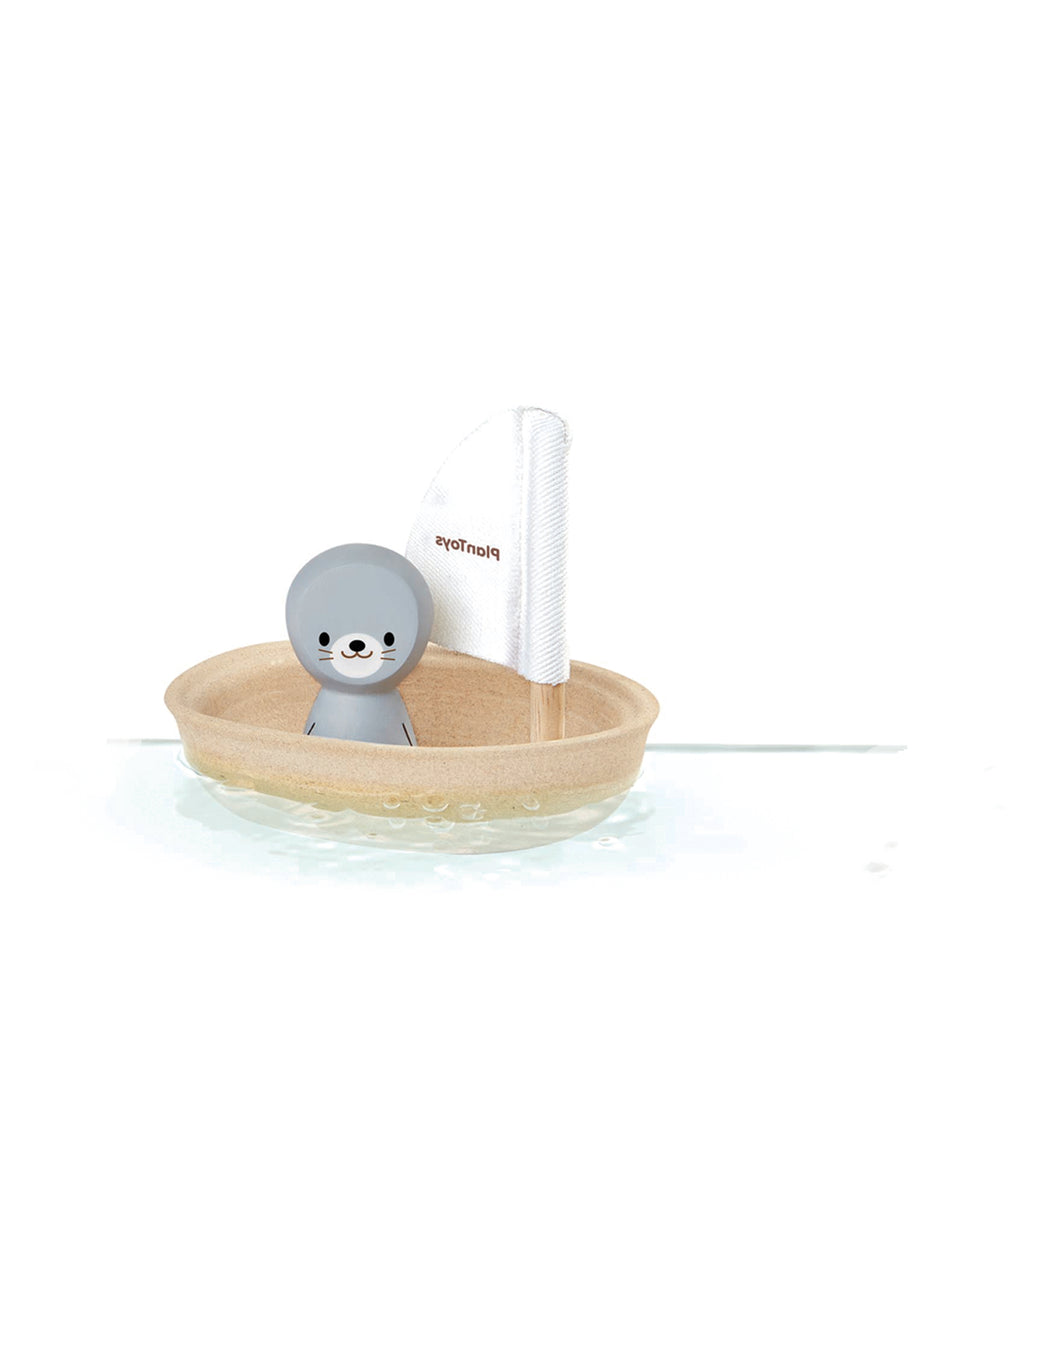 Wooden Sailing Boat Bath Toy -Seal